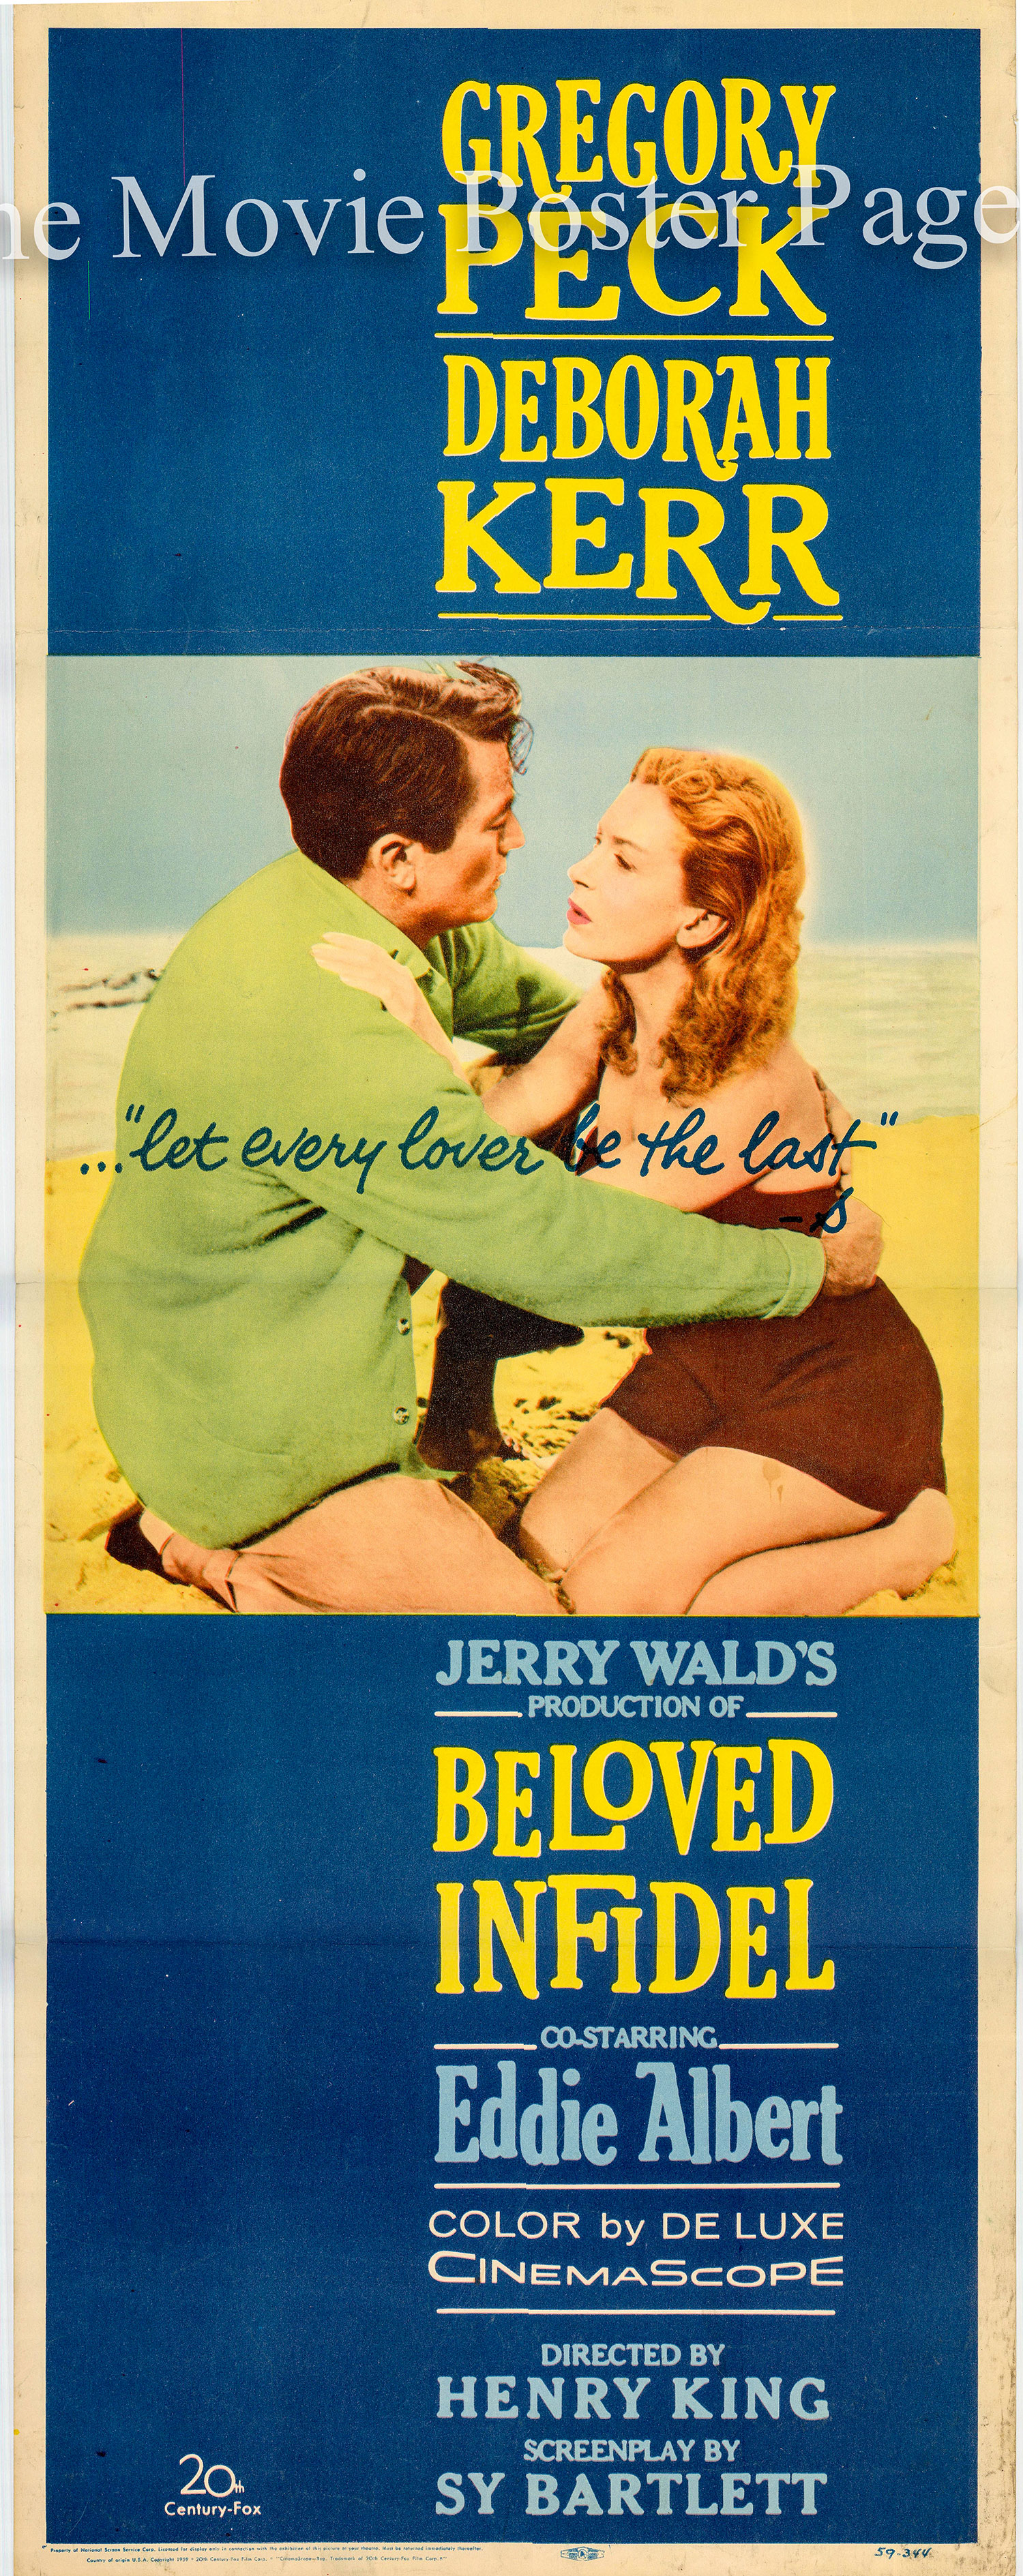 Pictured is a US insert promotional poster for the 1959 Henry King film Beloved Infidel starring Gregory Peck and Deborah Kerr.